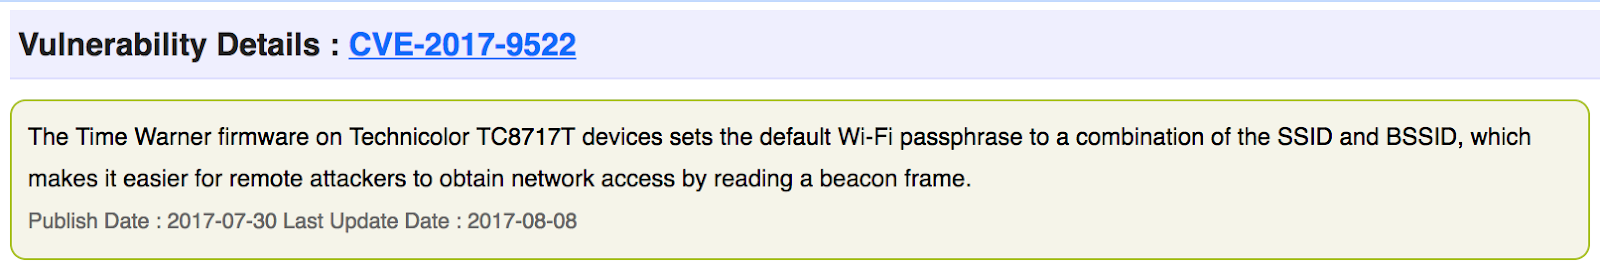 Default Wi-Fi passphrase on Technicolor TC8717T | Chris C